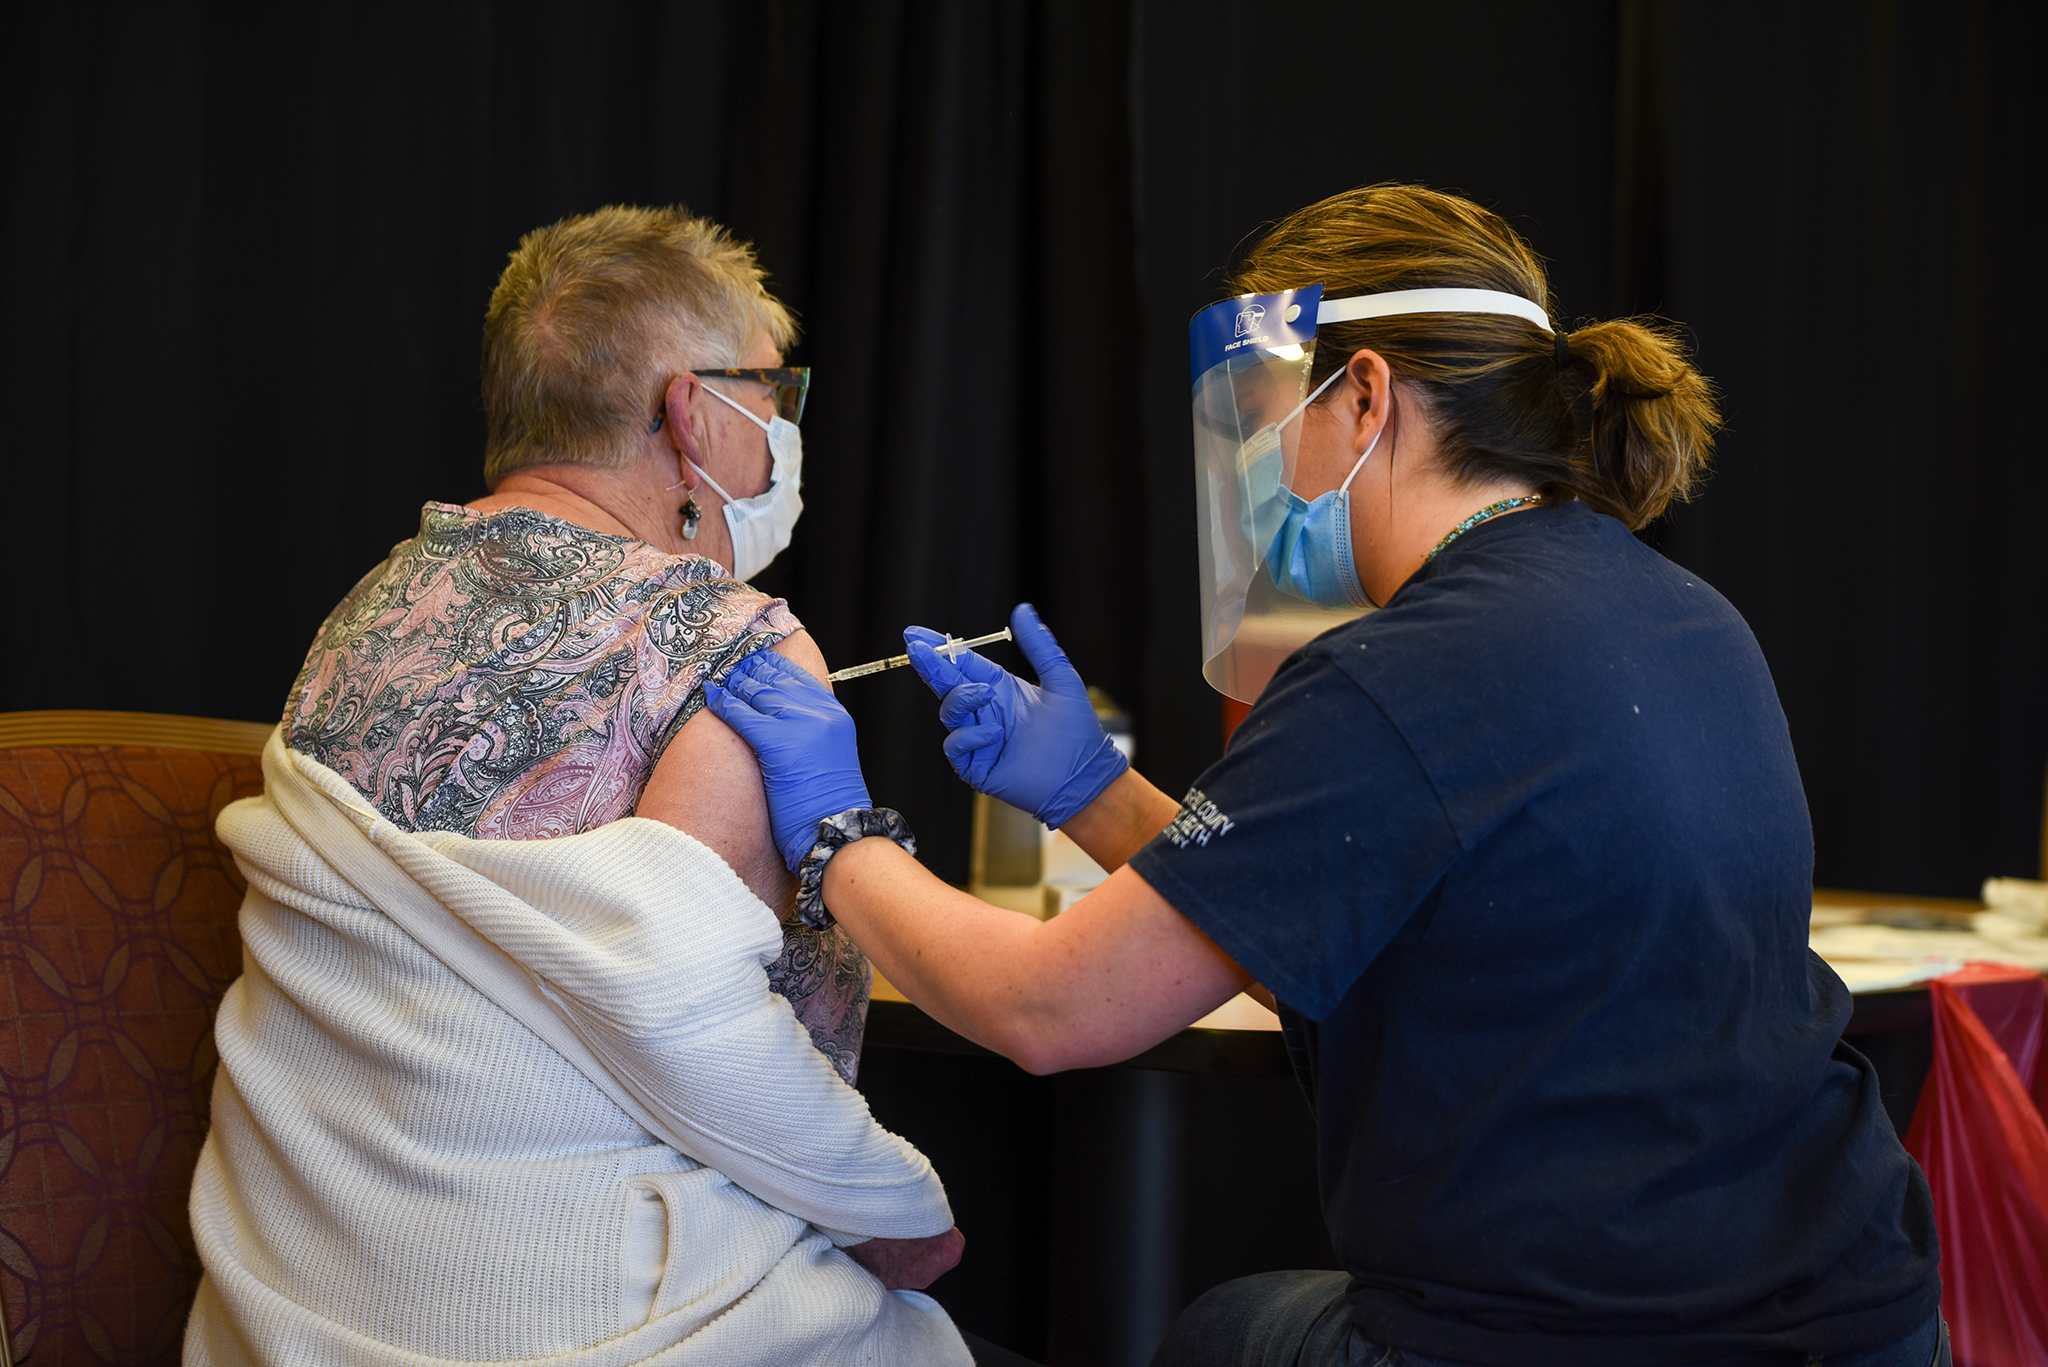 Helen Harper receives the Moderna COVID-19 vaccination, administered by Campbell County Public Health nurse, Sophie Hood. (Photo: County 17/Brooke Byelich)